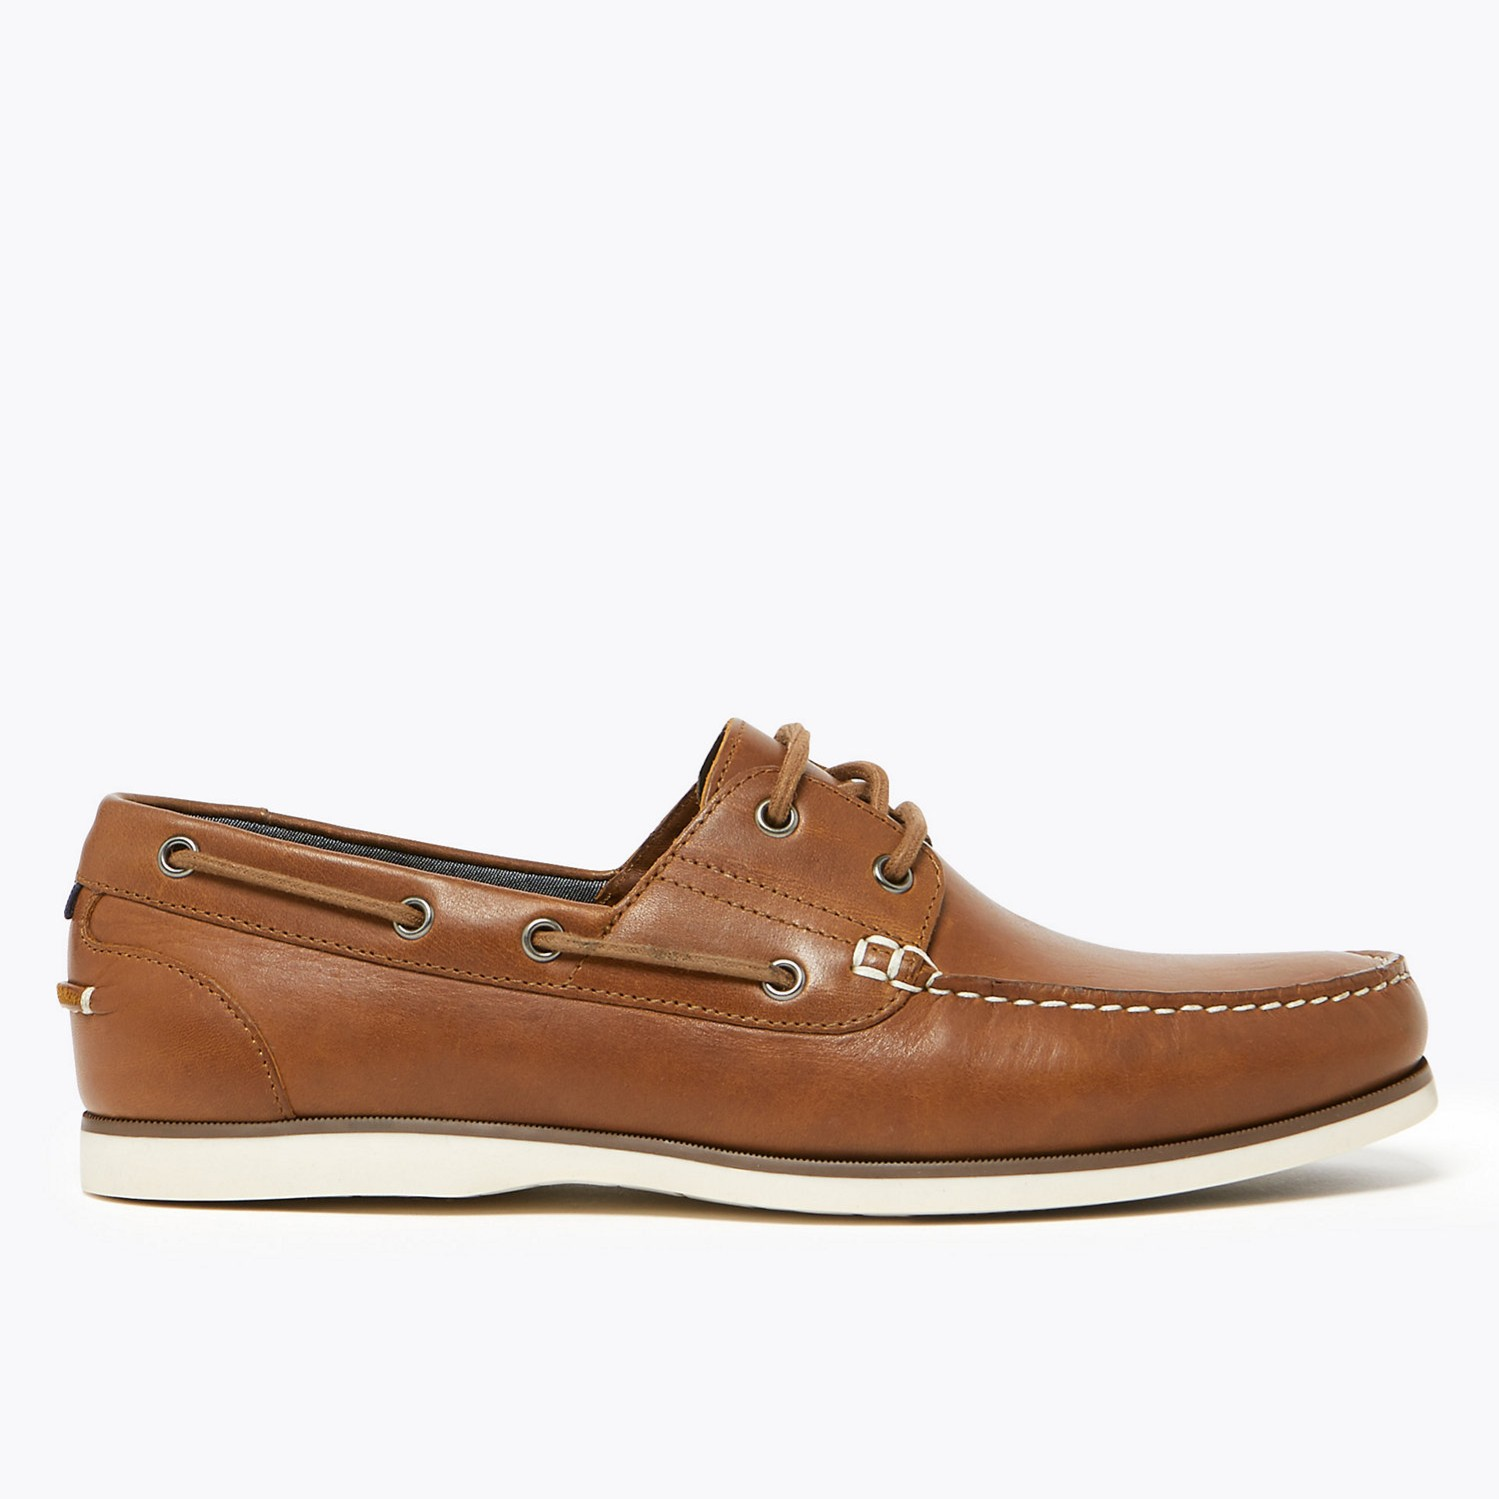 Marks and Spencer boat shoe